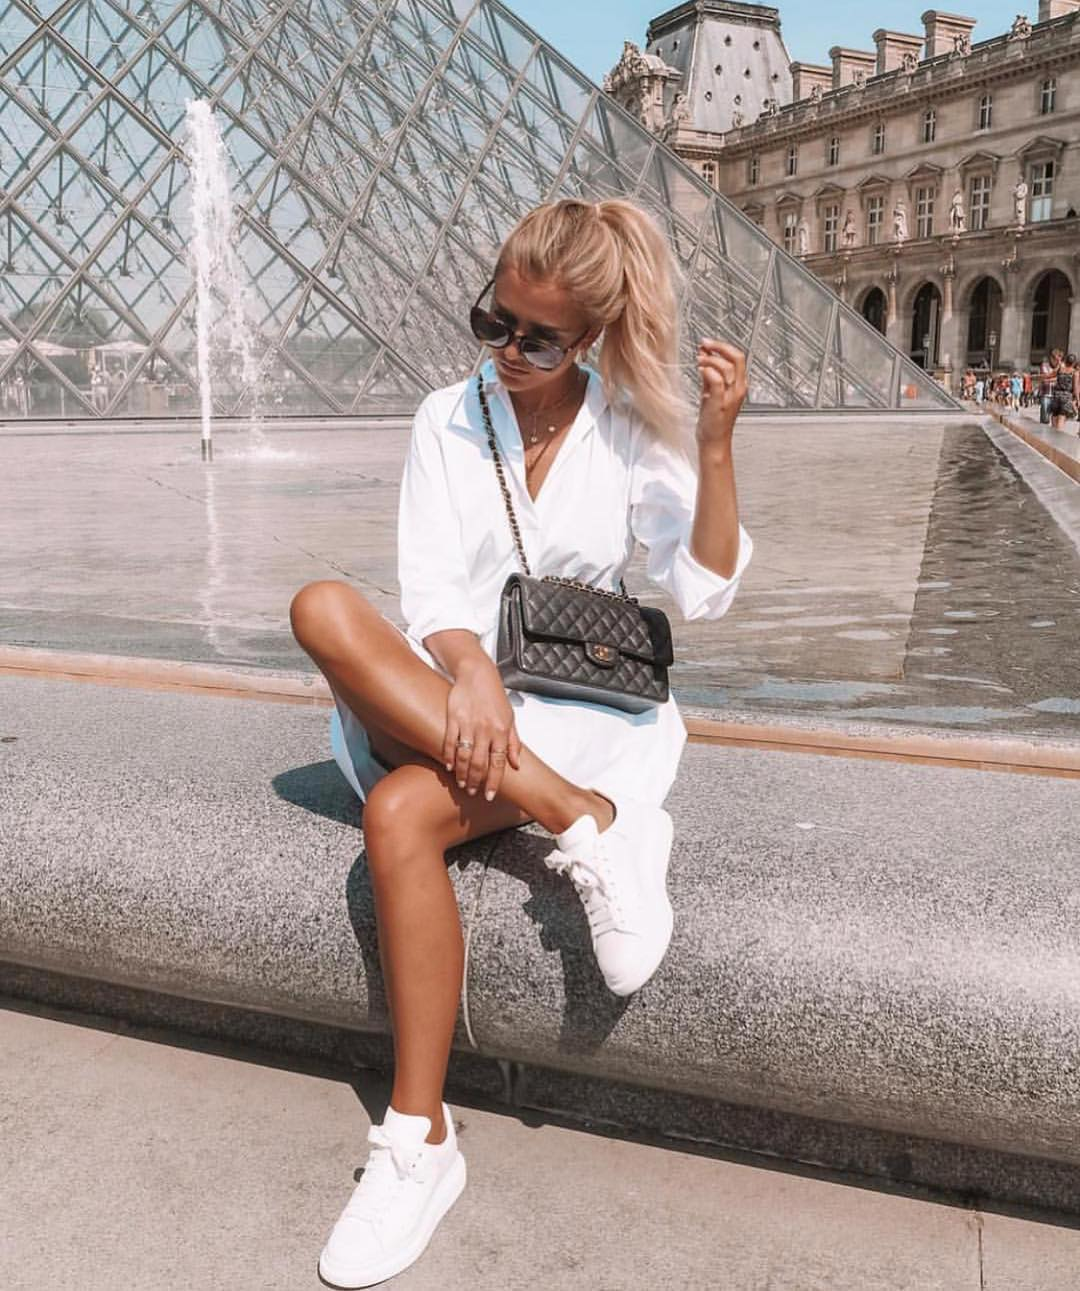 Monochrome Sporty Basics: White Dress And White Sneakers For Summer 2019